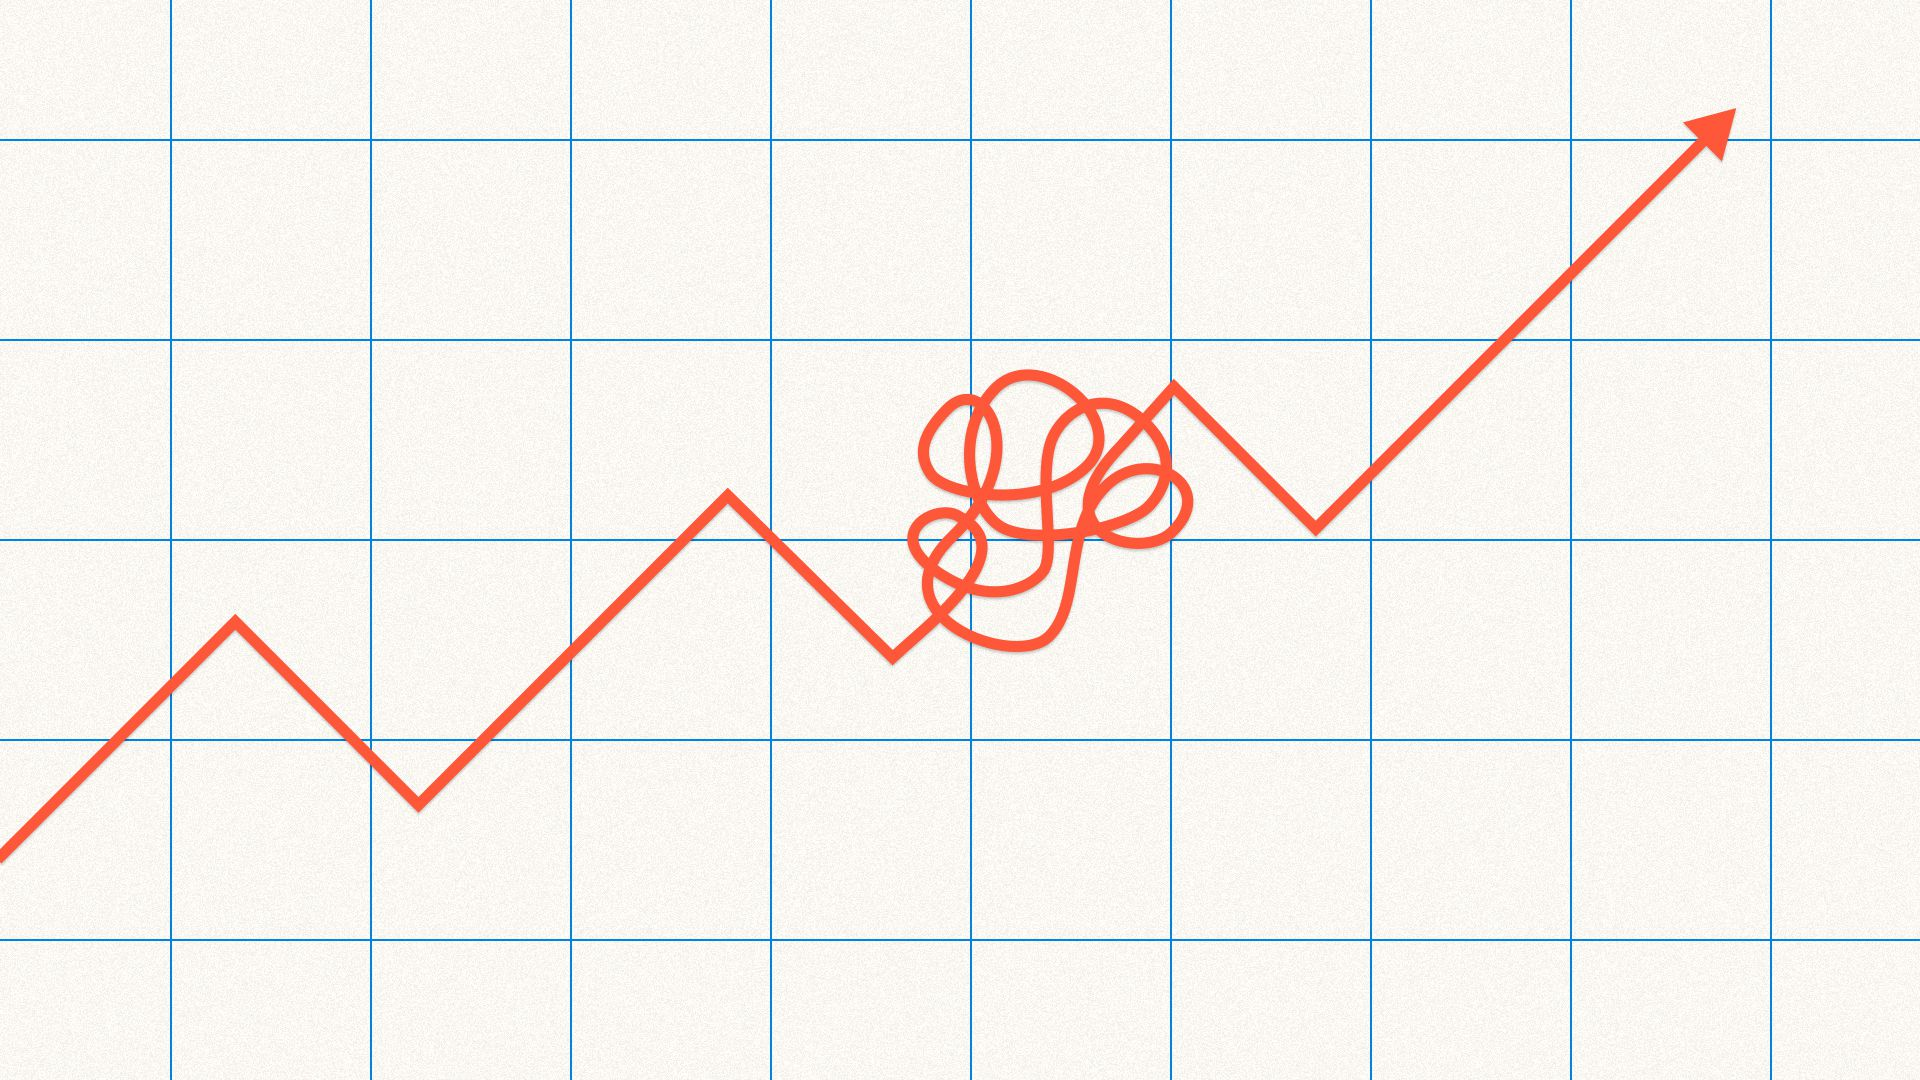 Illustration of upward trending line graph with knot in the middle